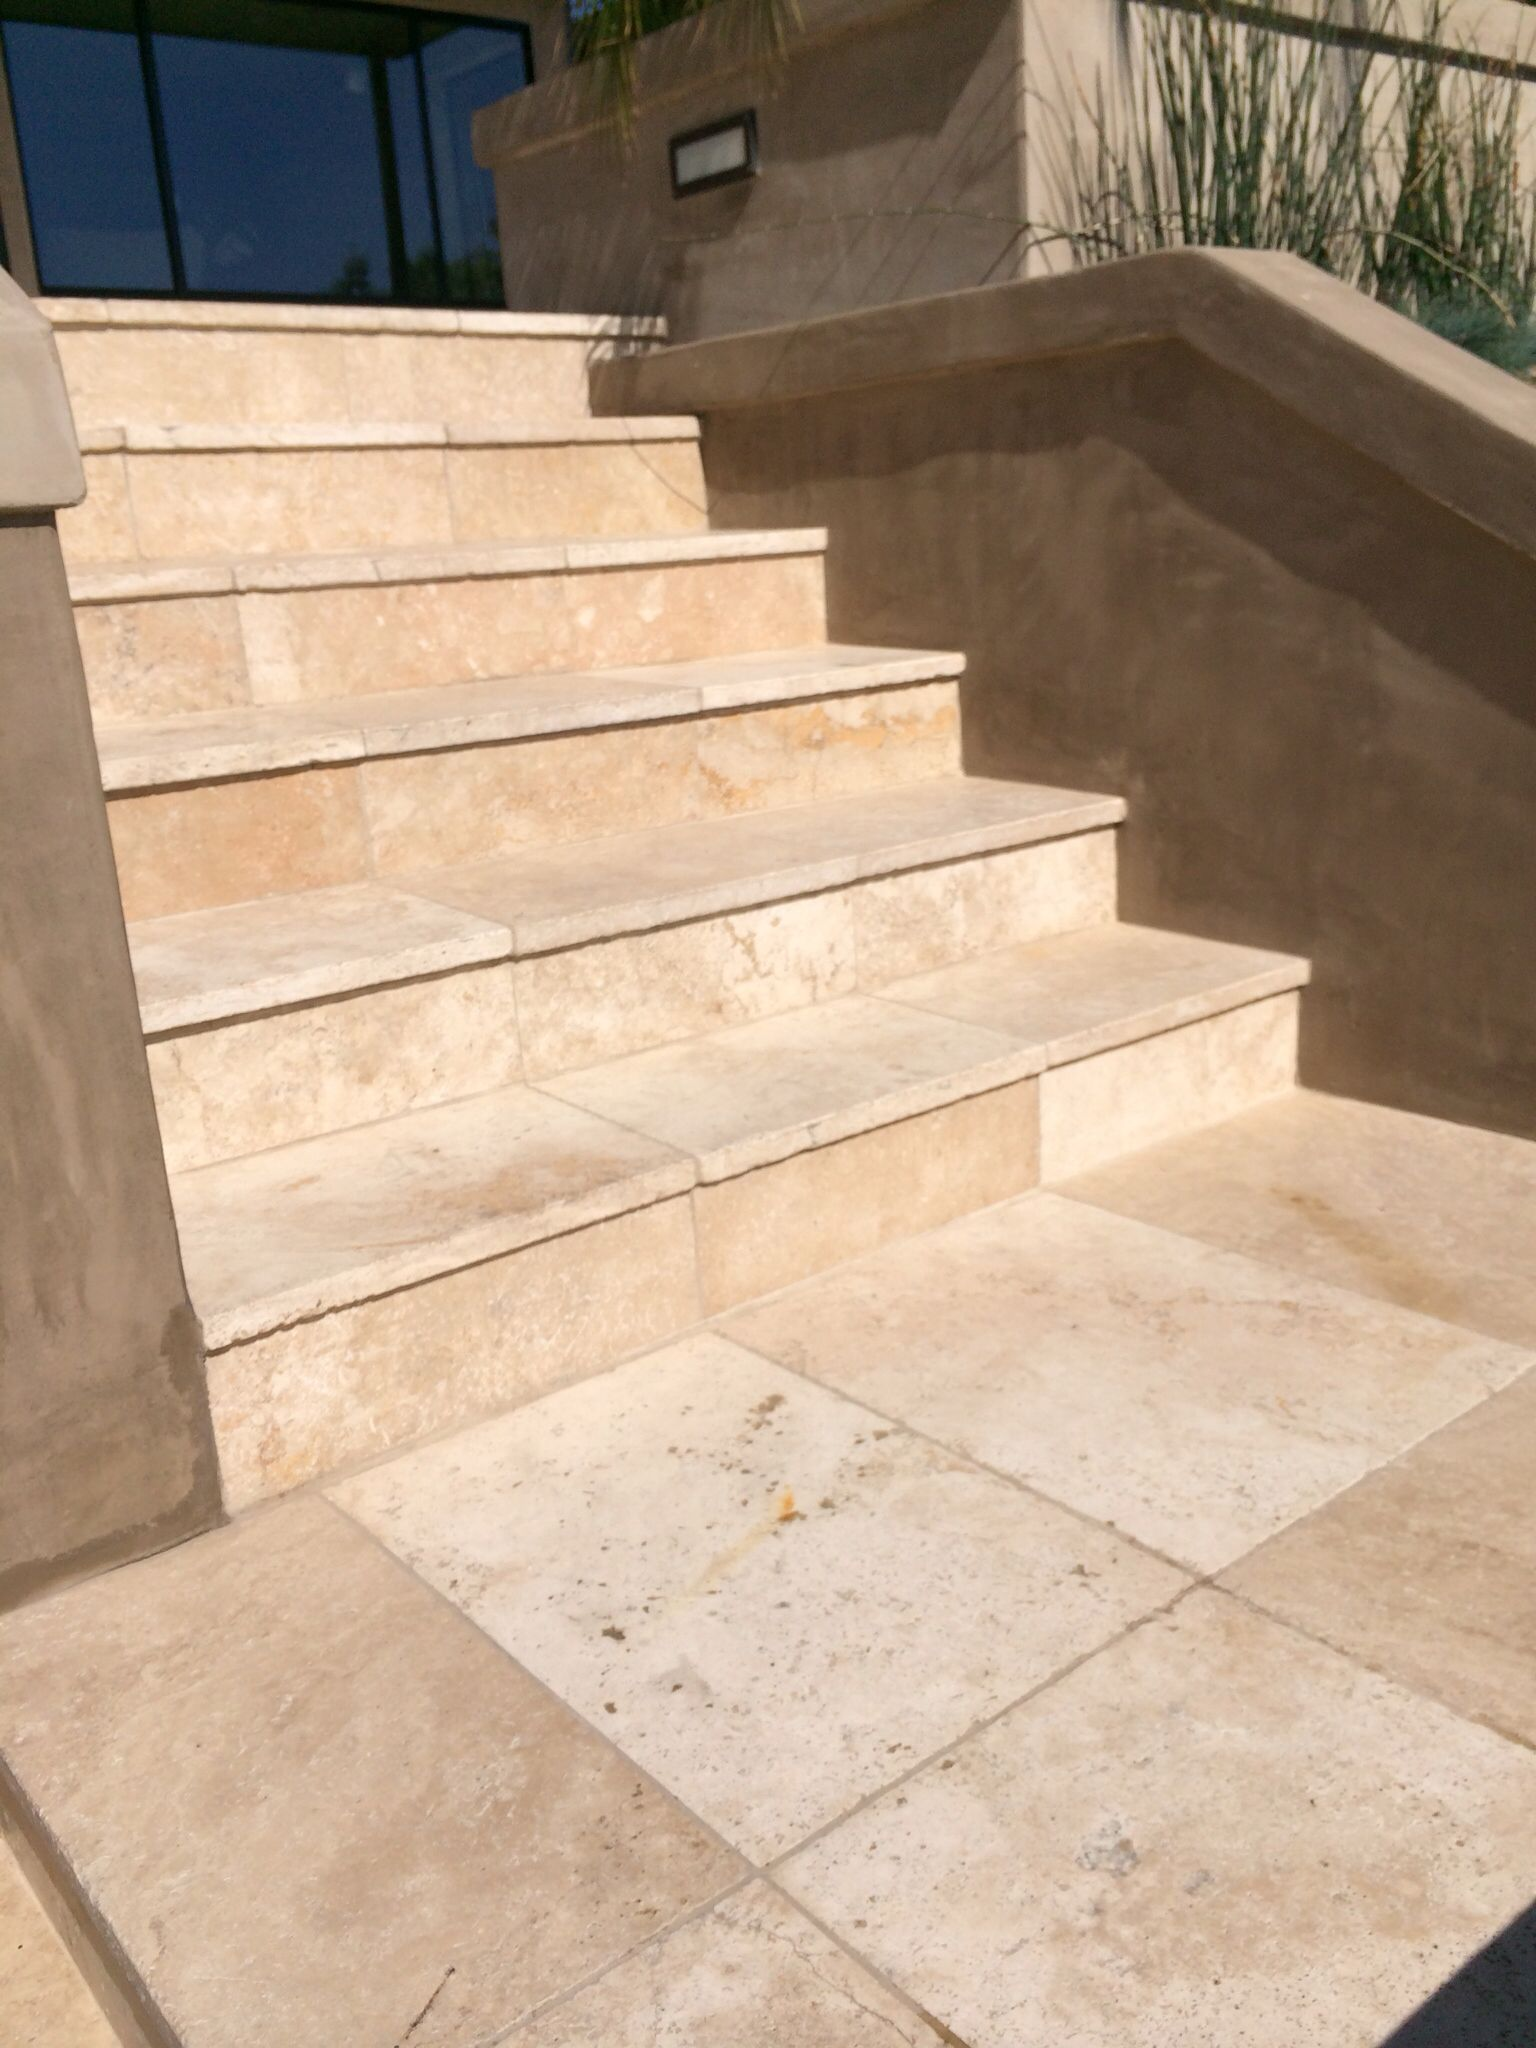 Travertine stairs | Home ideas | Pinterest | Travertine ...